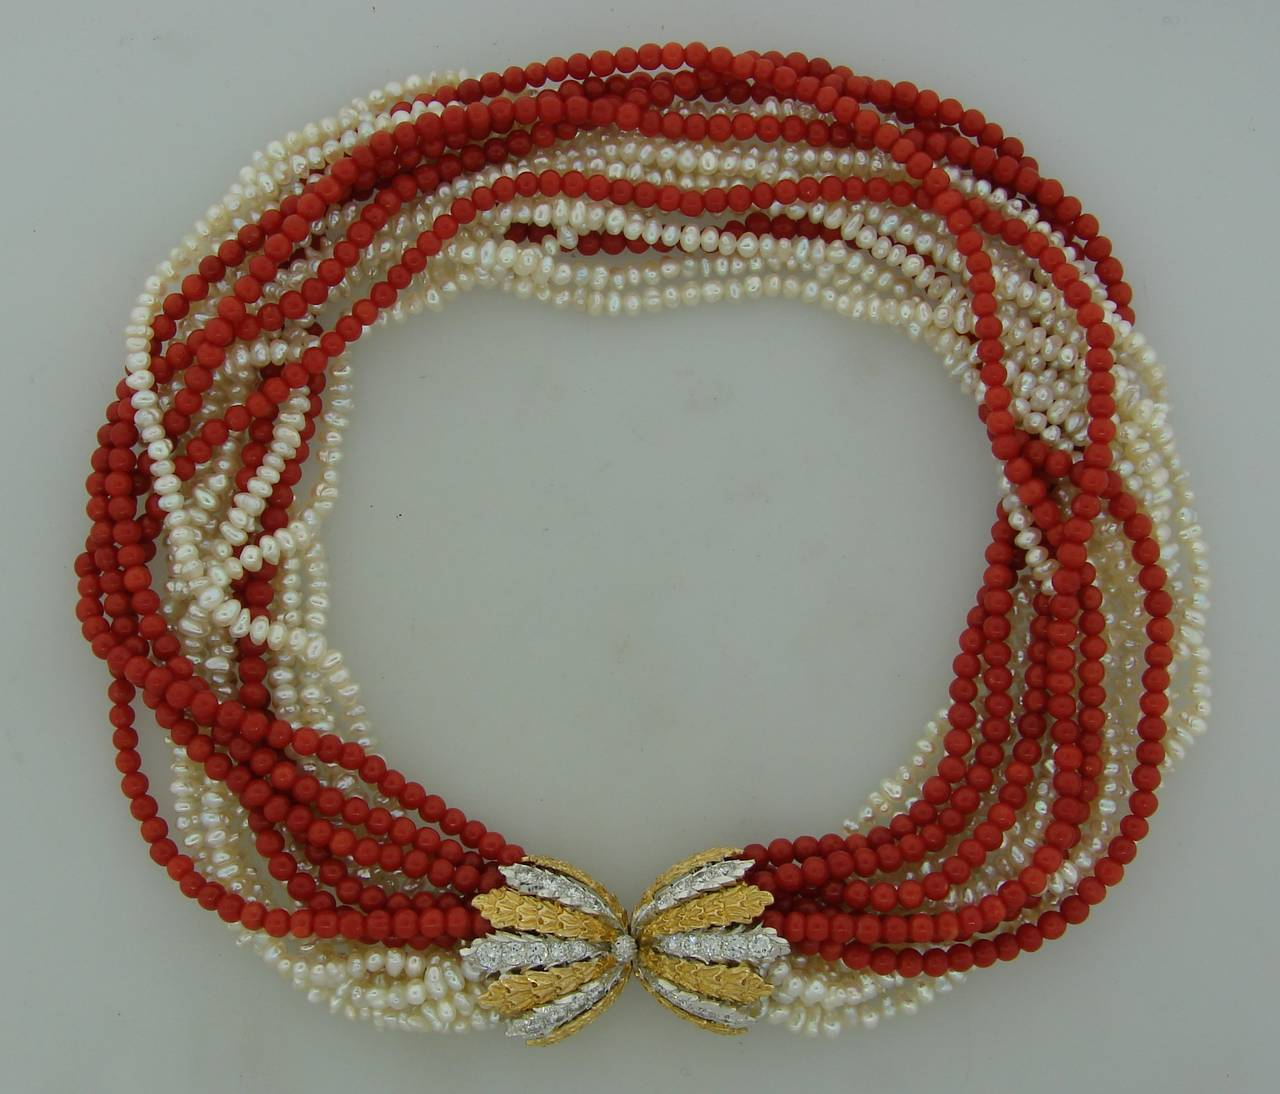 Fabulous elegant necklace created by Mario Buccellati in Italy in the 1950's. Features ten strands of white freshwater pearls and six strands of Mediterranean coral connected with a diamond and yellow & white gold clasp. The necklace has a lot